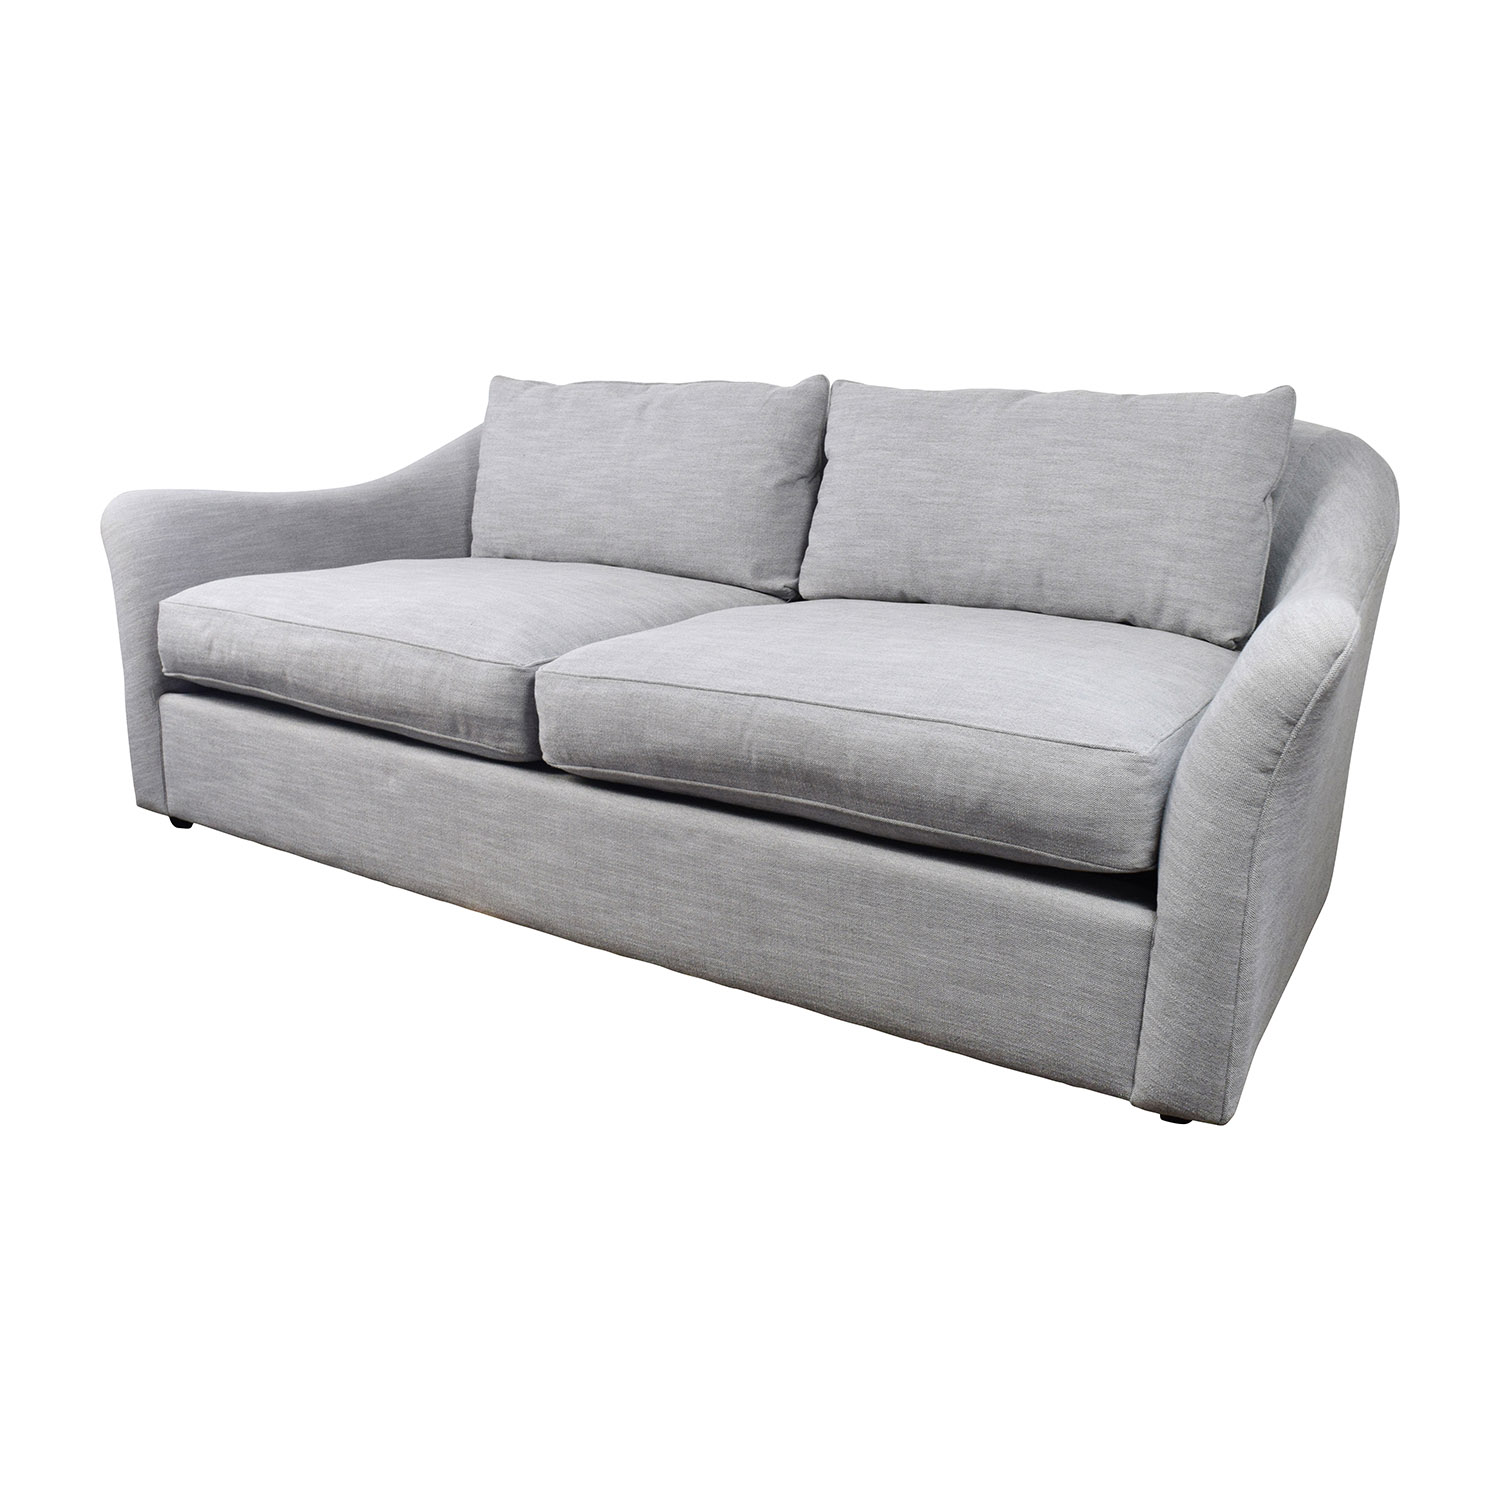 west elm sofa sleeper cama bogota olx delaney 30 off grey sofas thesofa